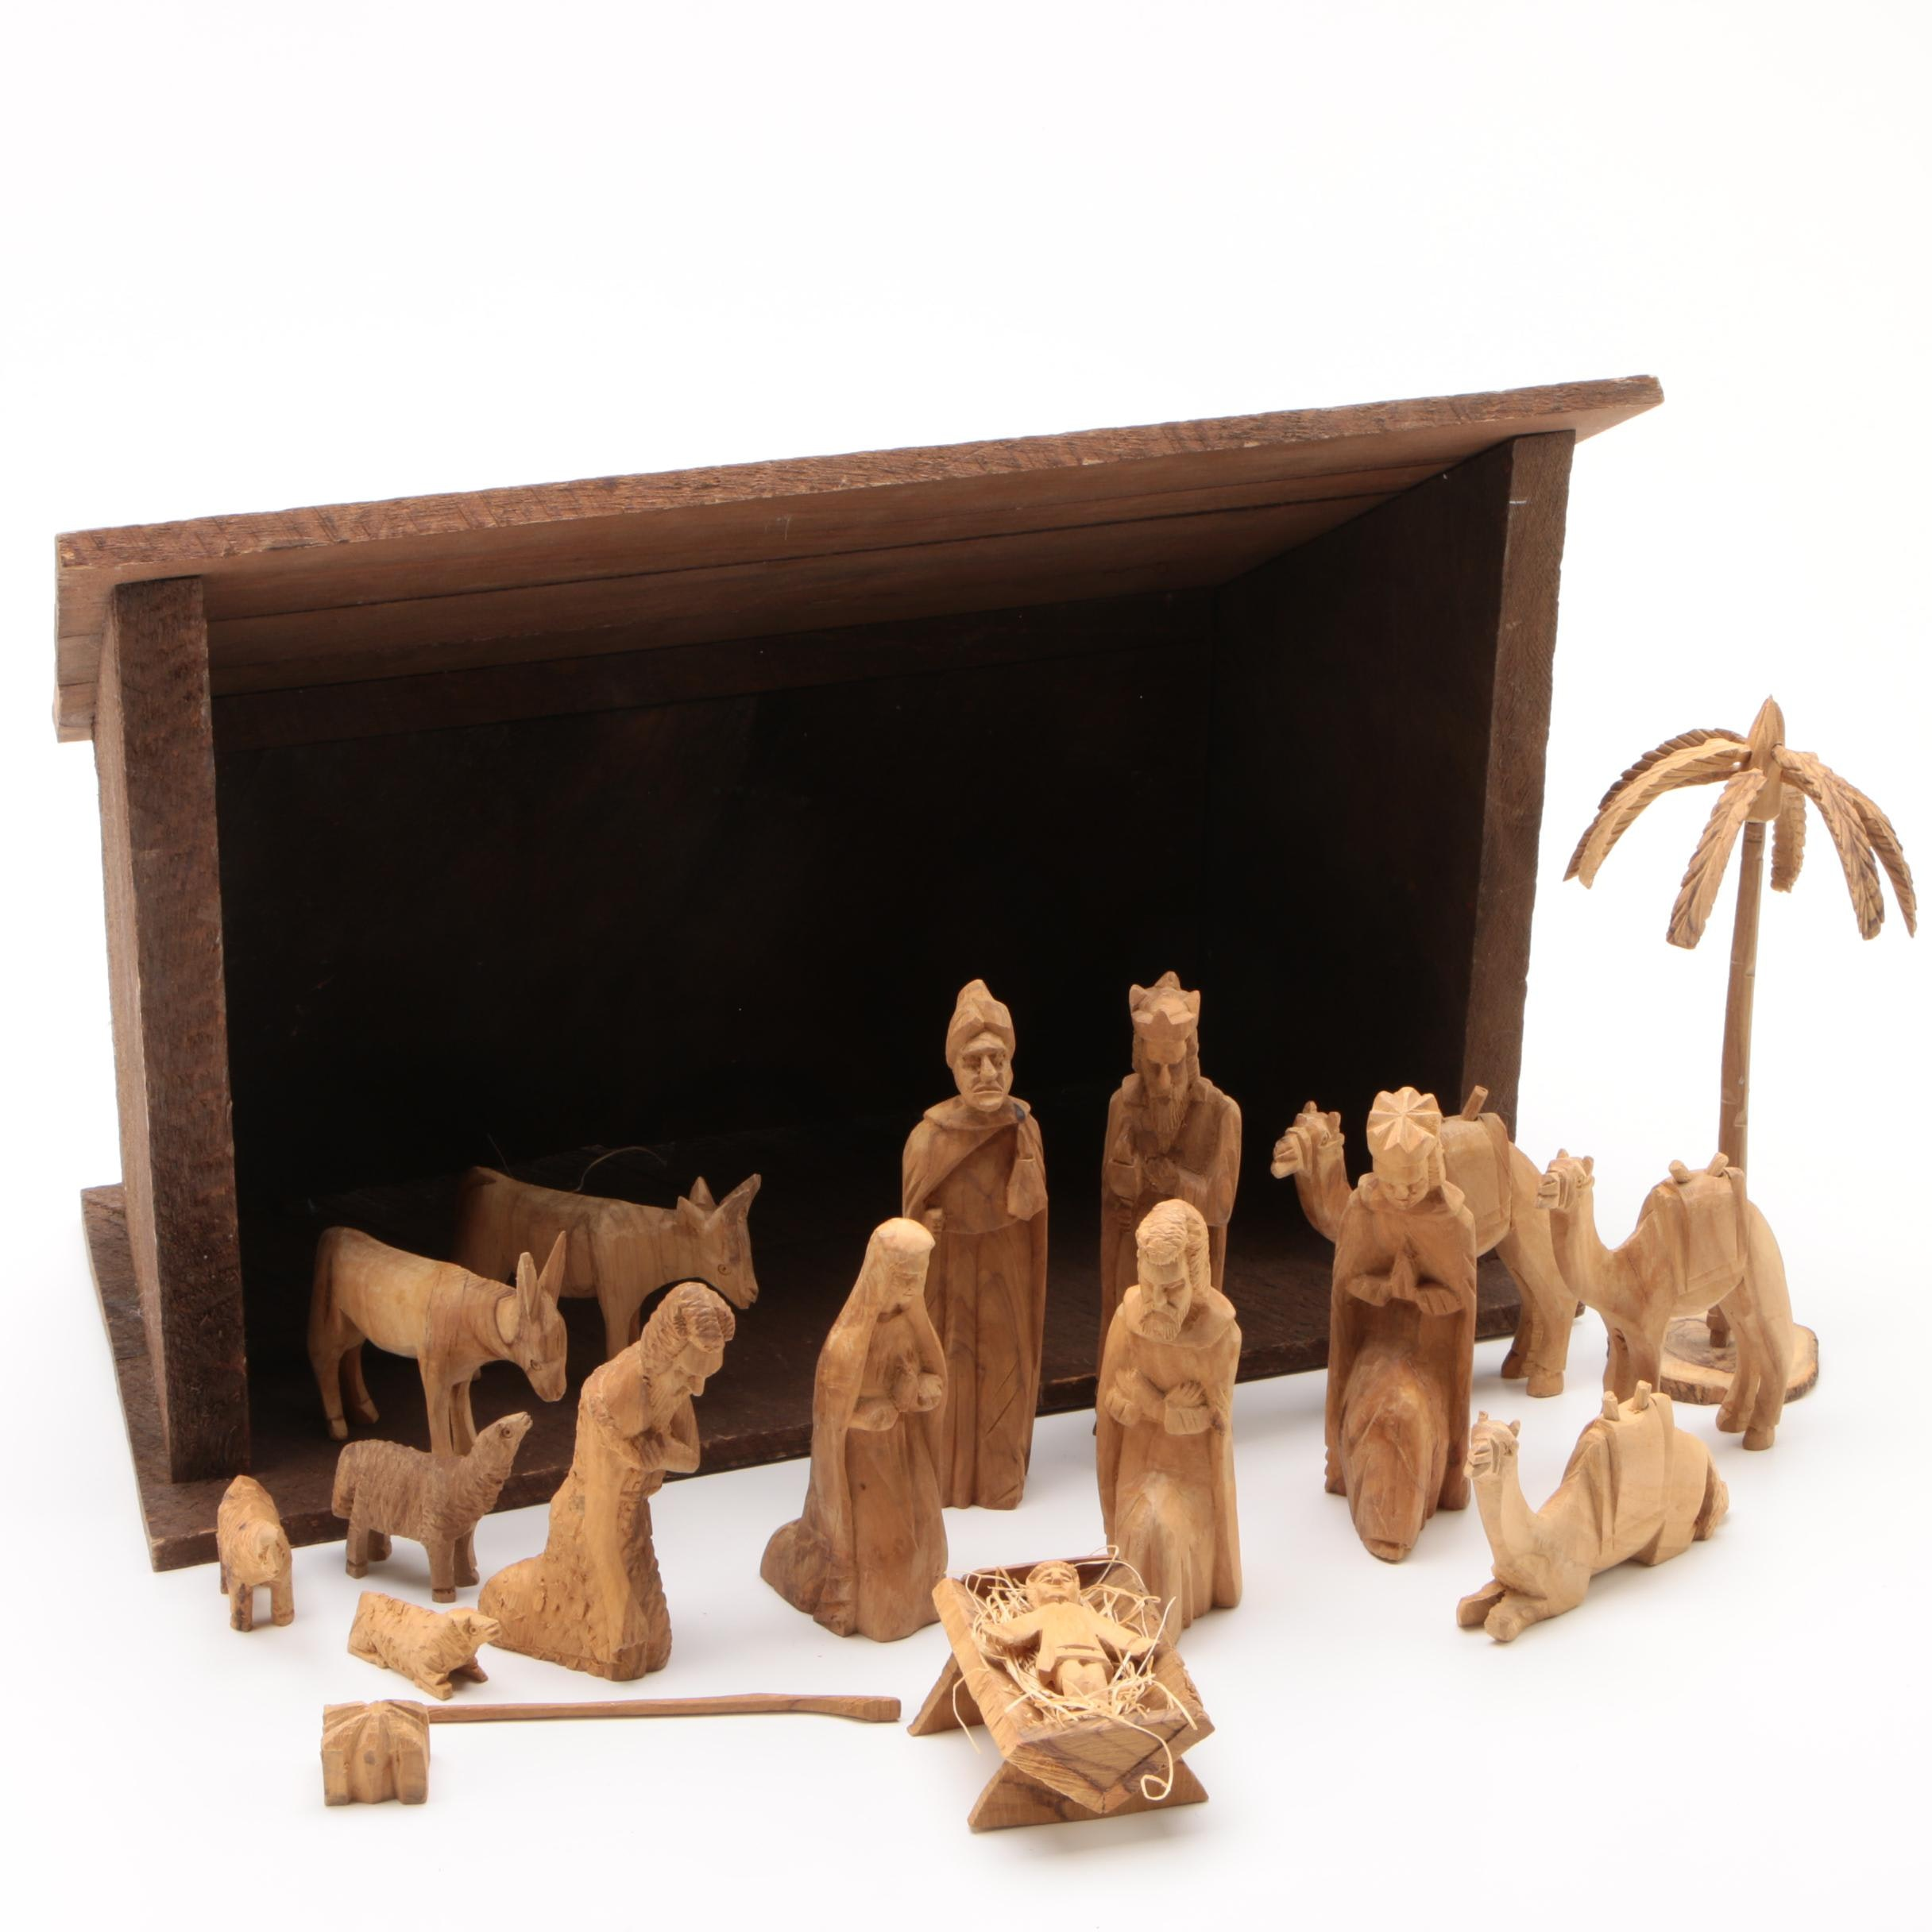 Hand Carved Olivewood Crèche Figurines with Manger